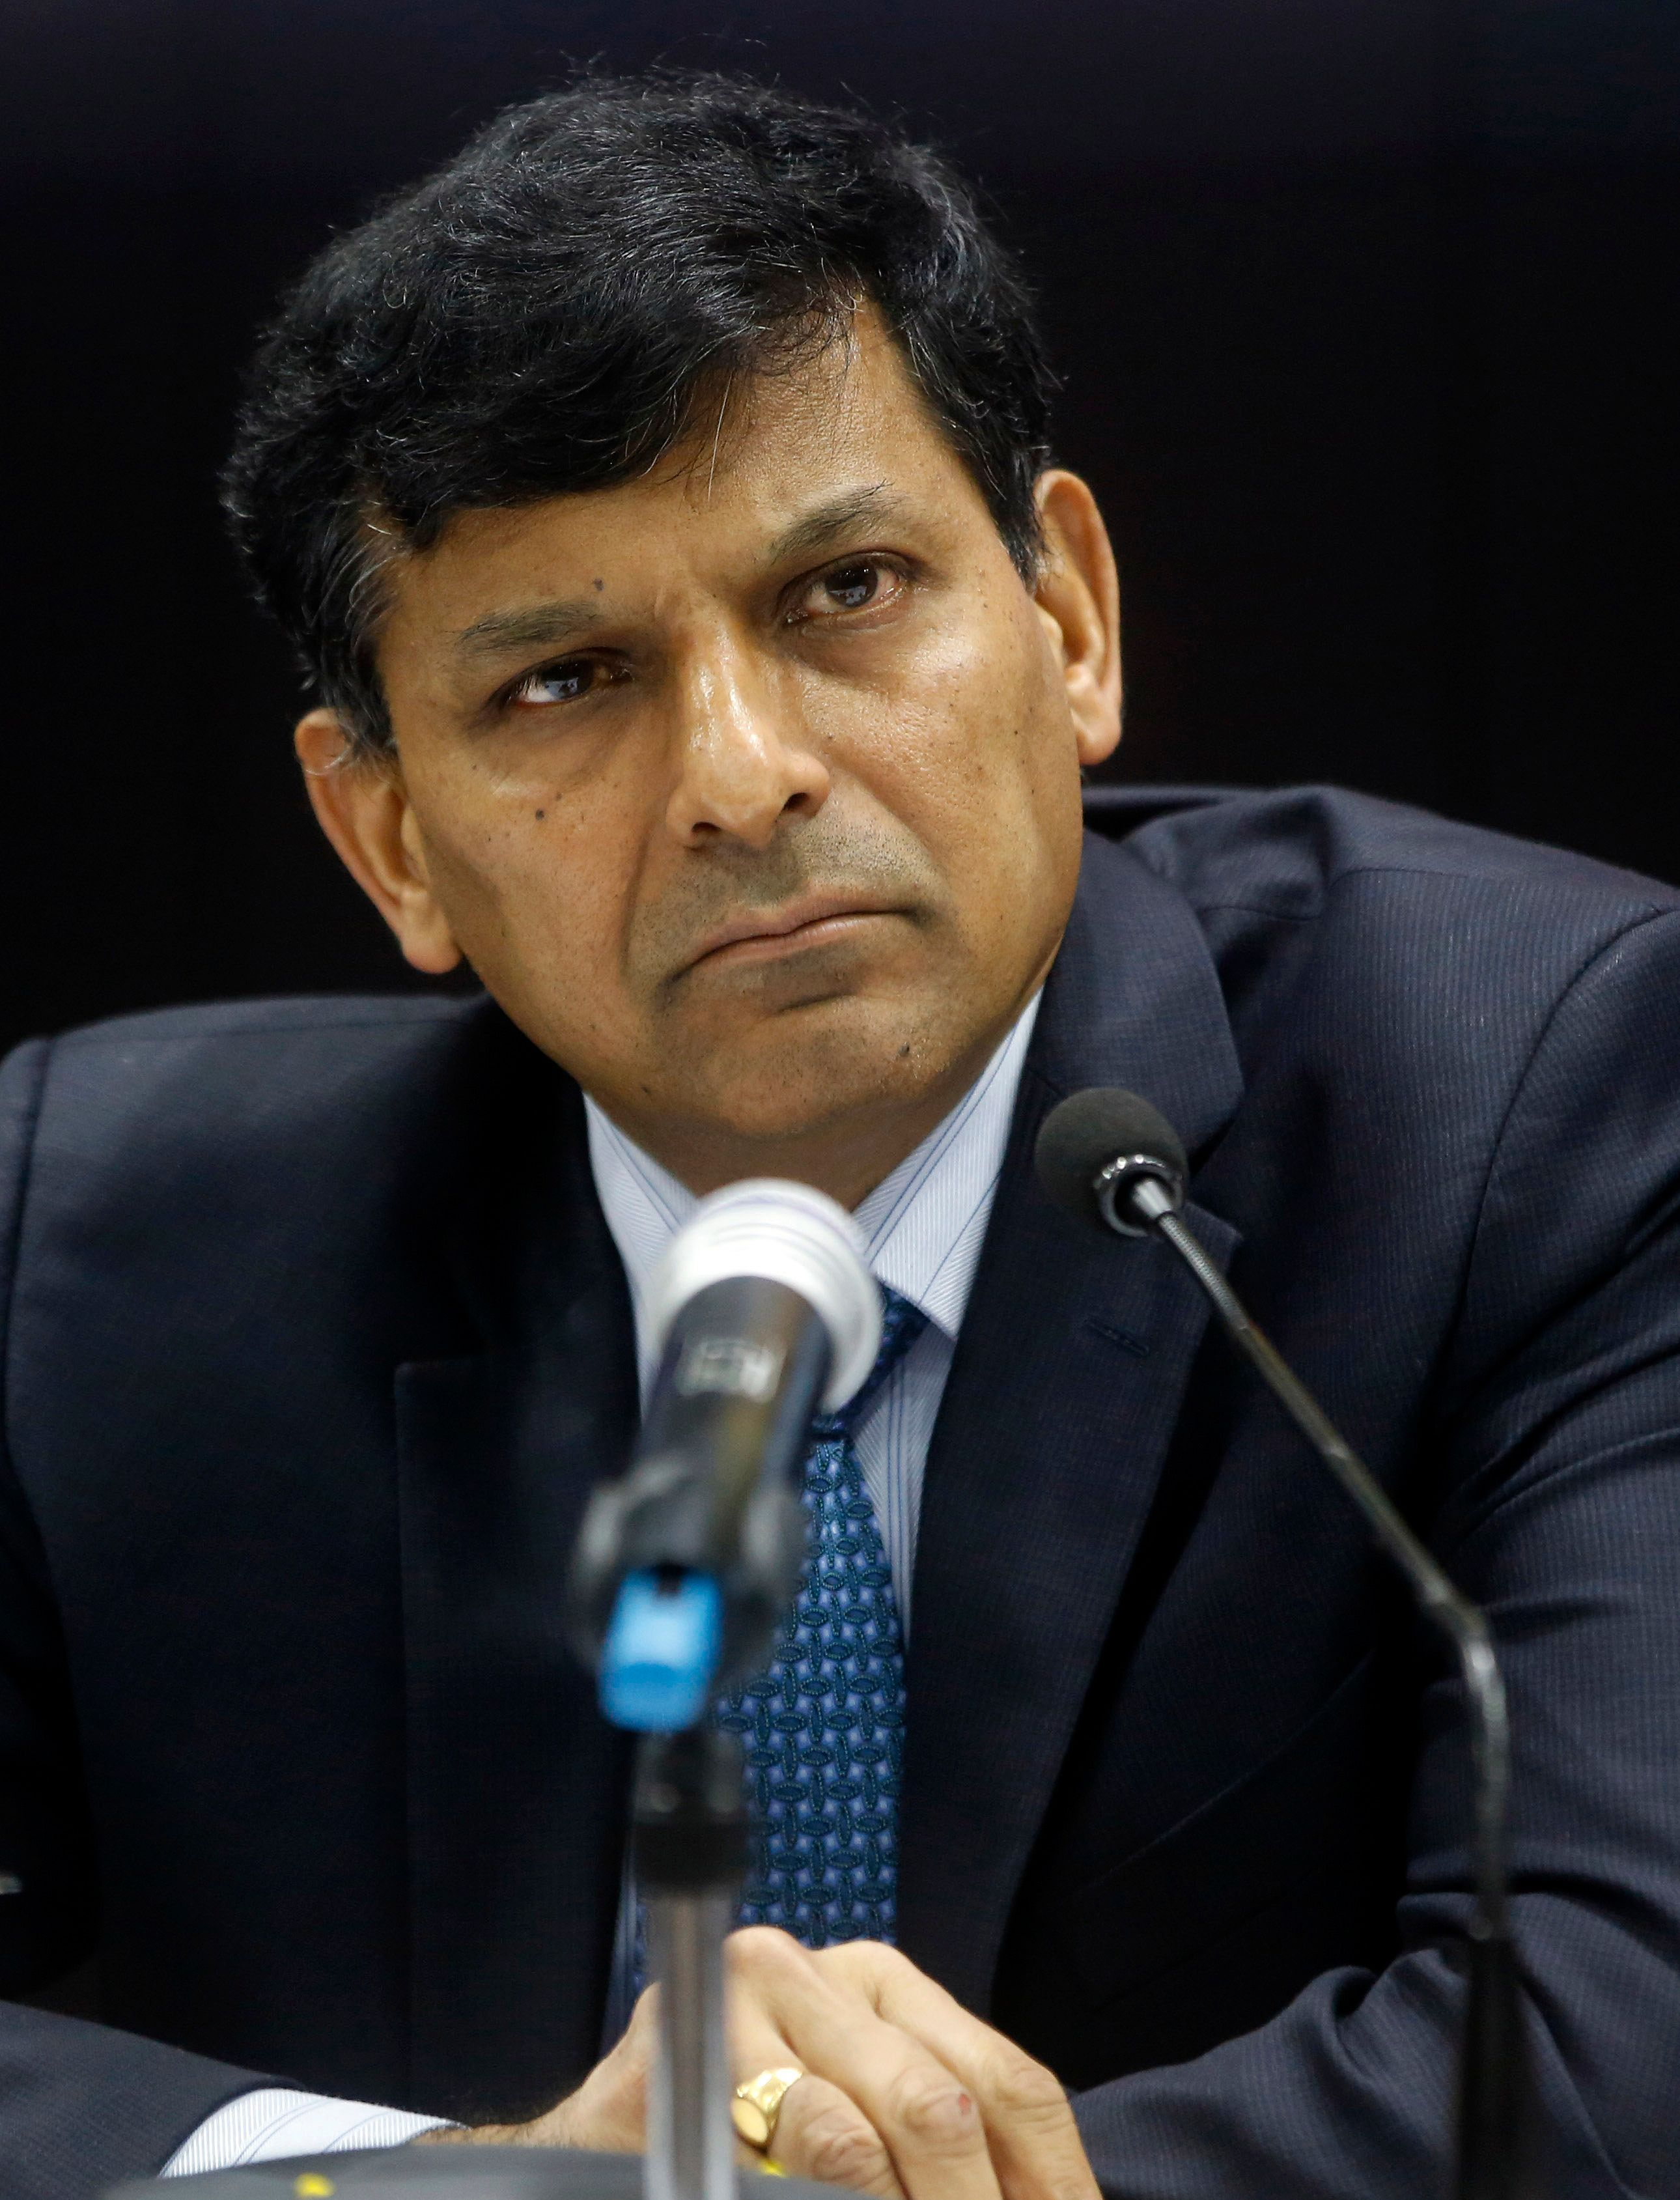 Indian Economy Will Surpass China Eventually: Raghuram